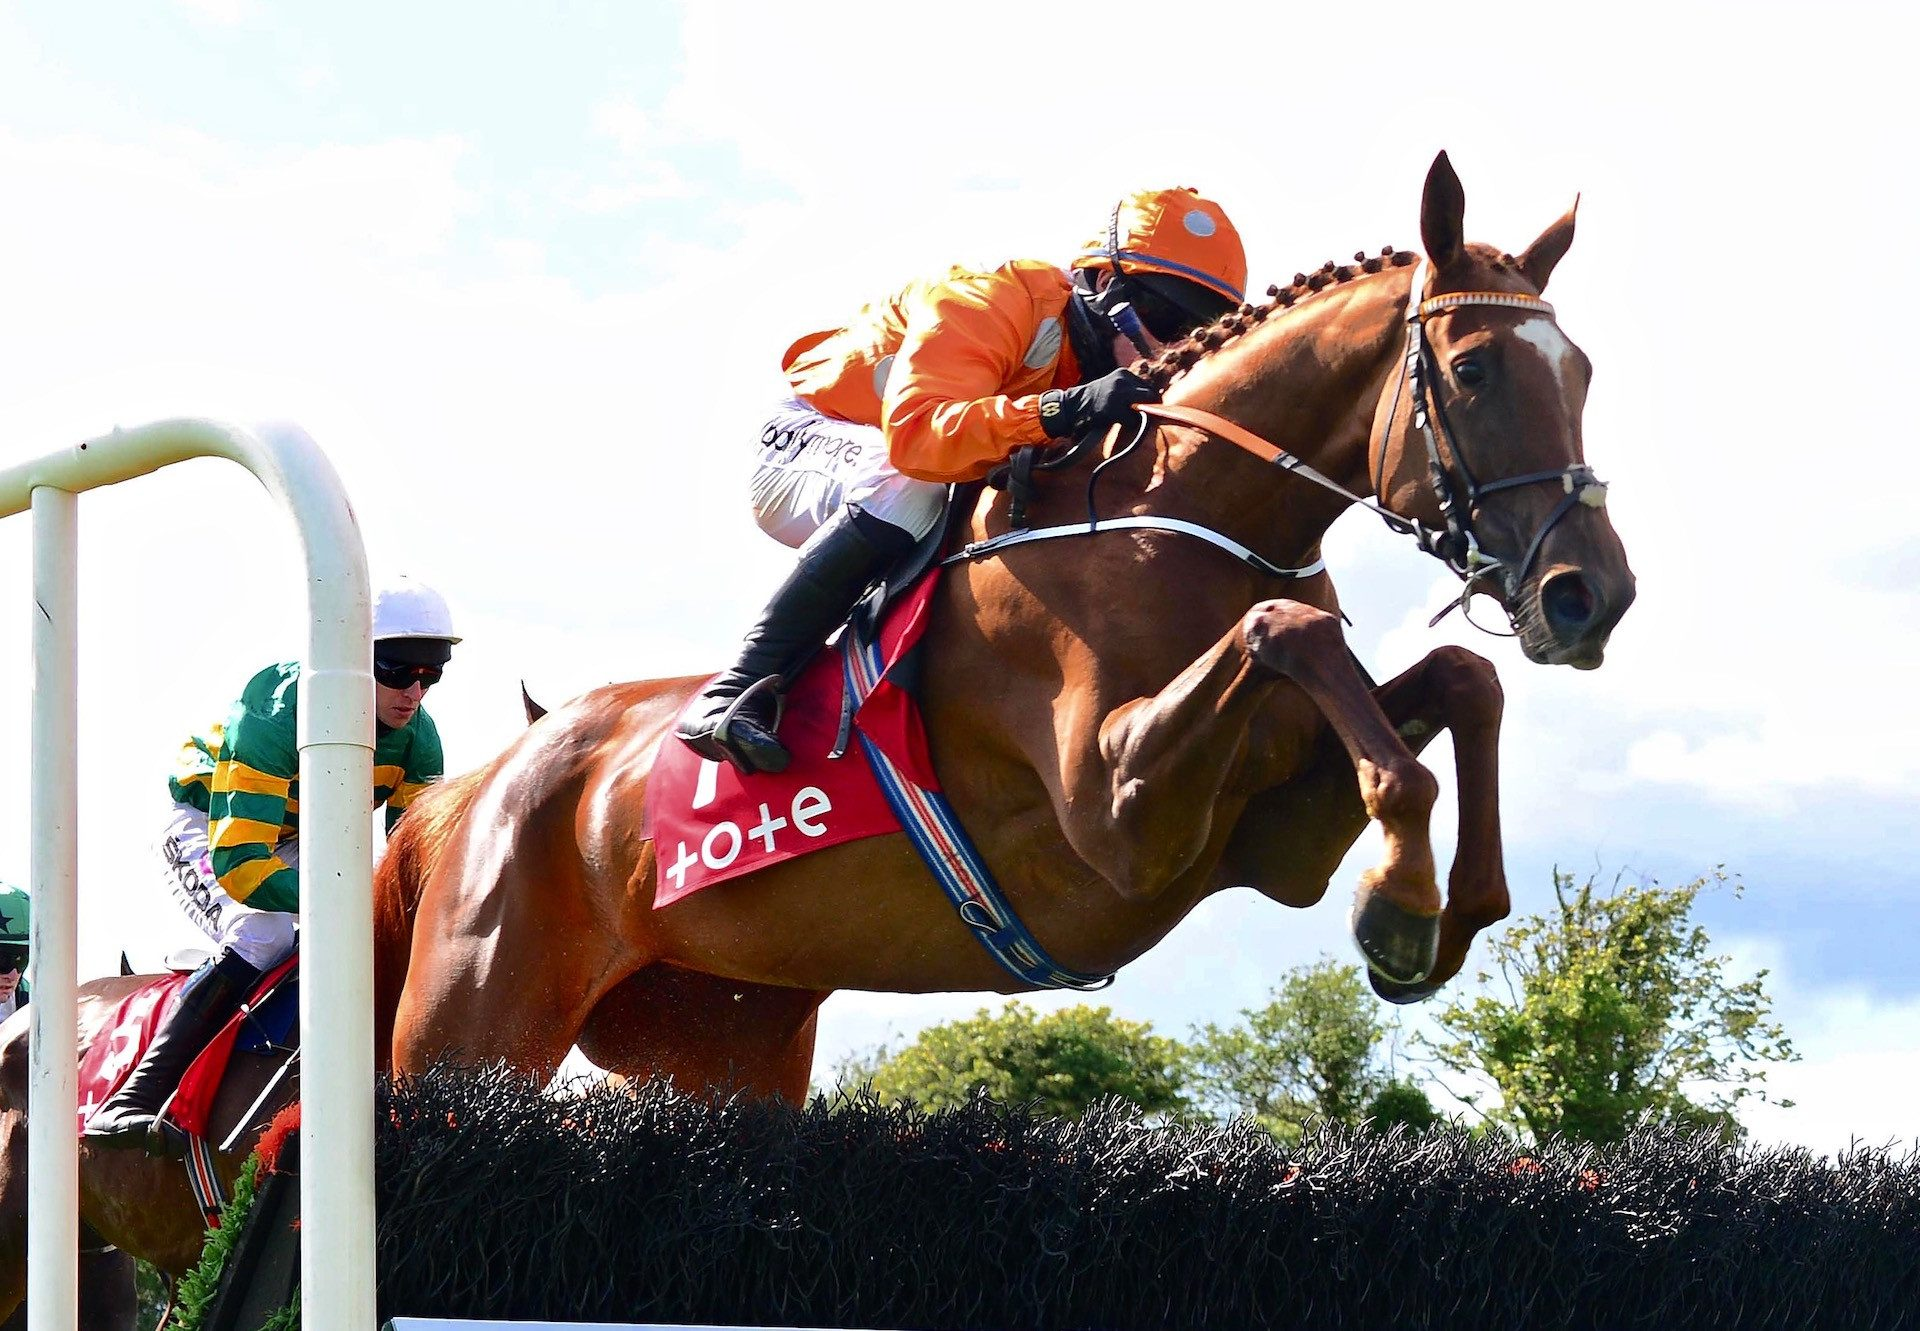 Annie G (Getaway) Wins The Listed Novice Hurdle At The Galway Festival